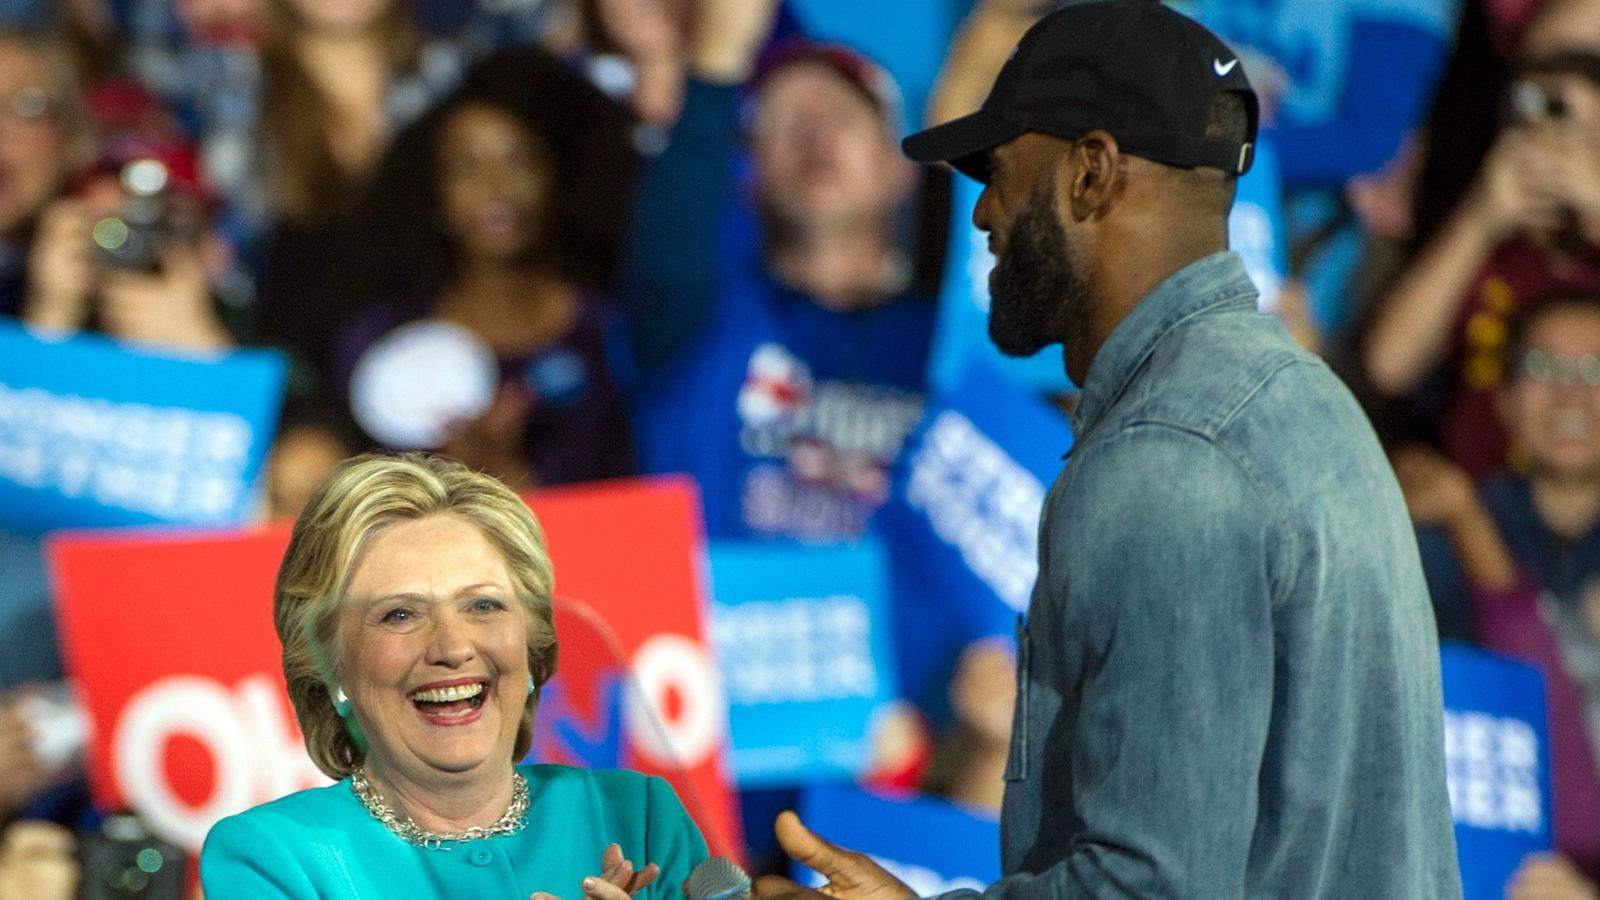 Hillary Clinton in Cleveland with LeBron James on Sunday. (Phil Long / Associated Press)